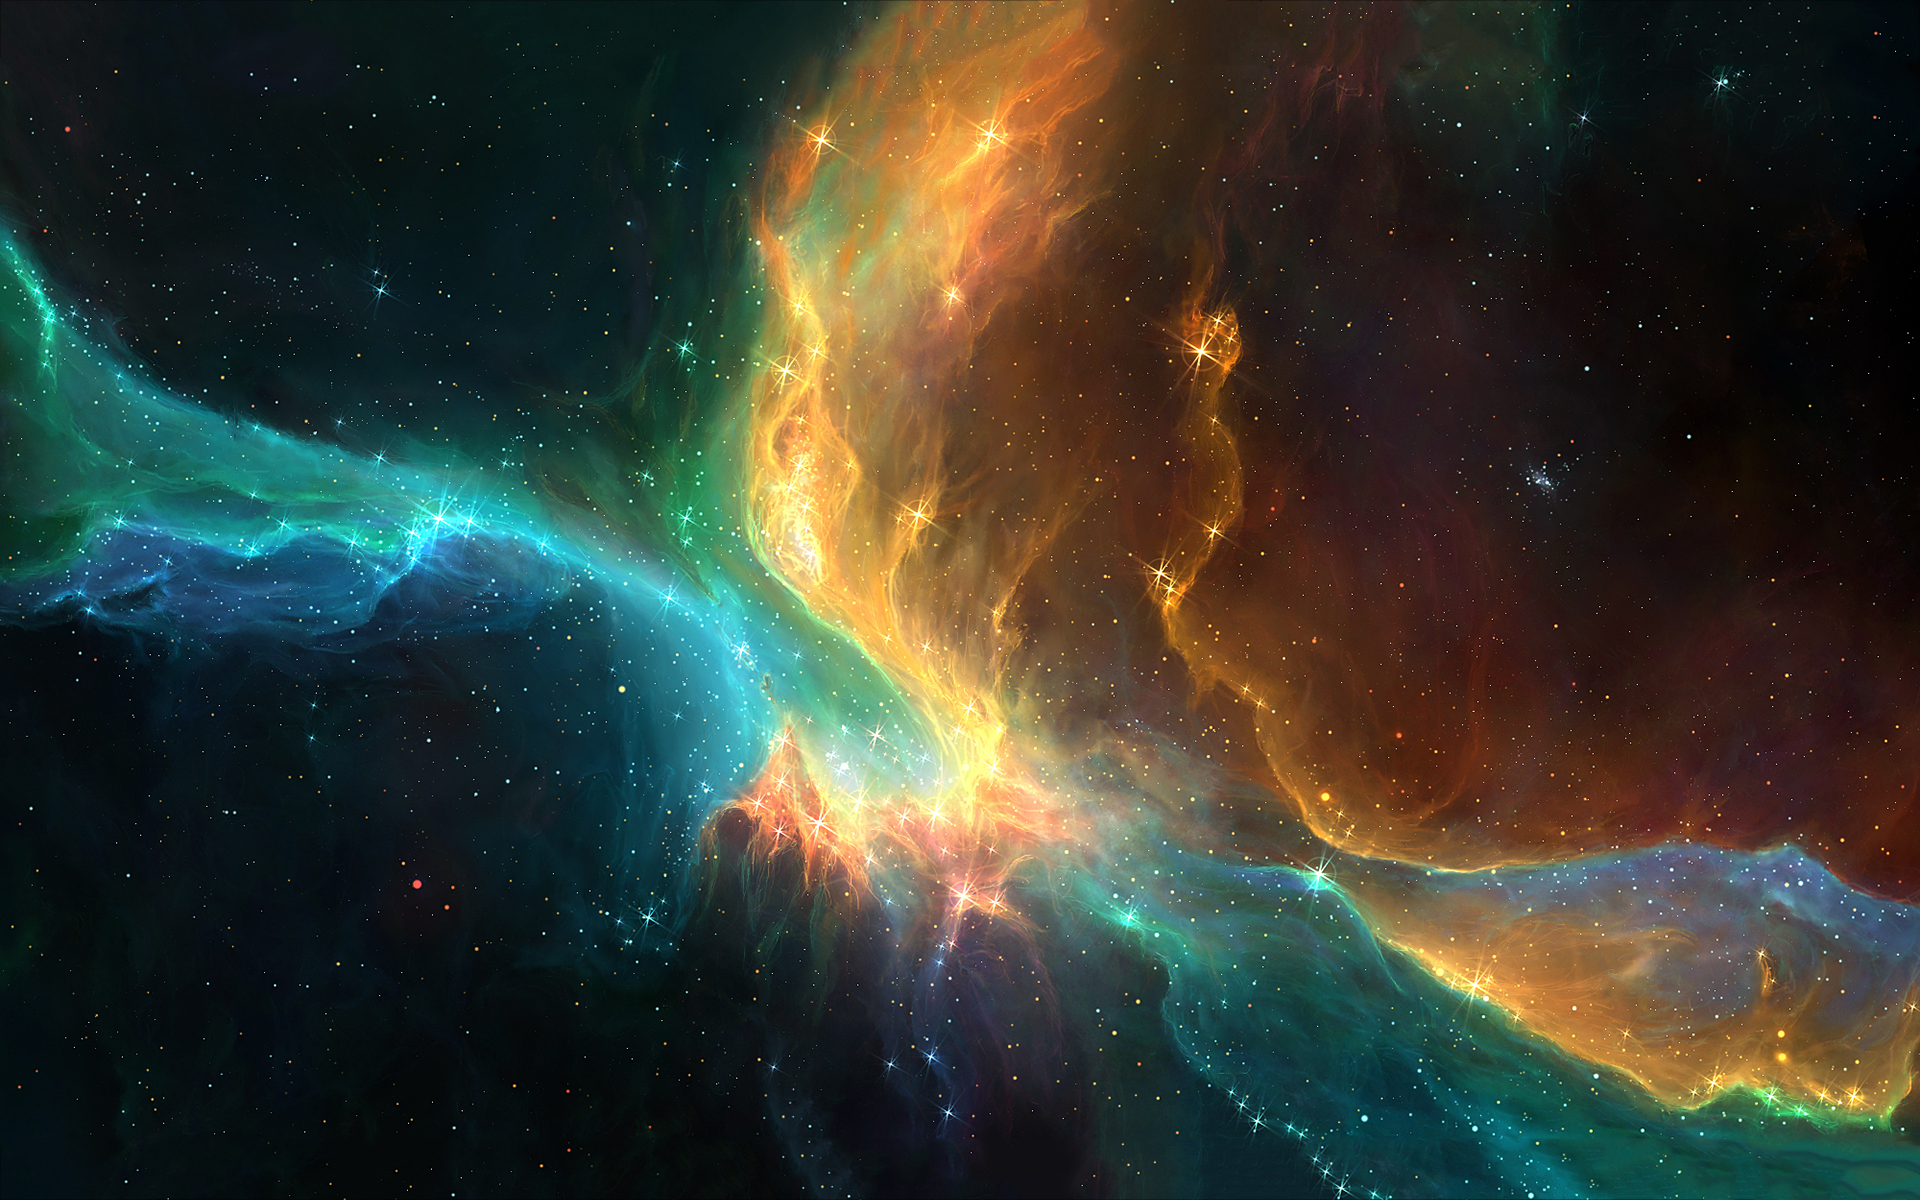 Space stars cosmic nebula